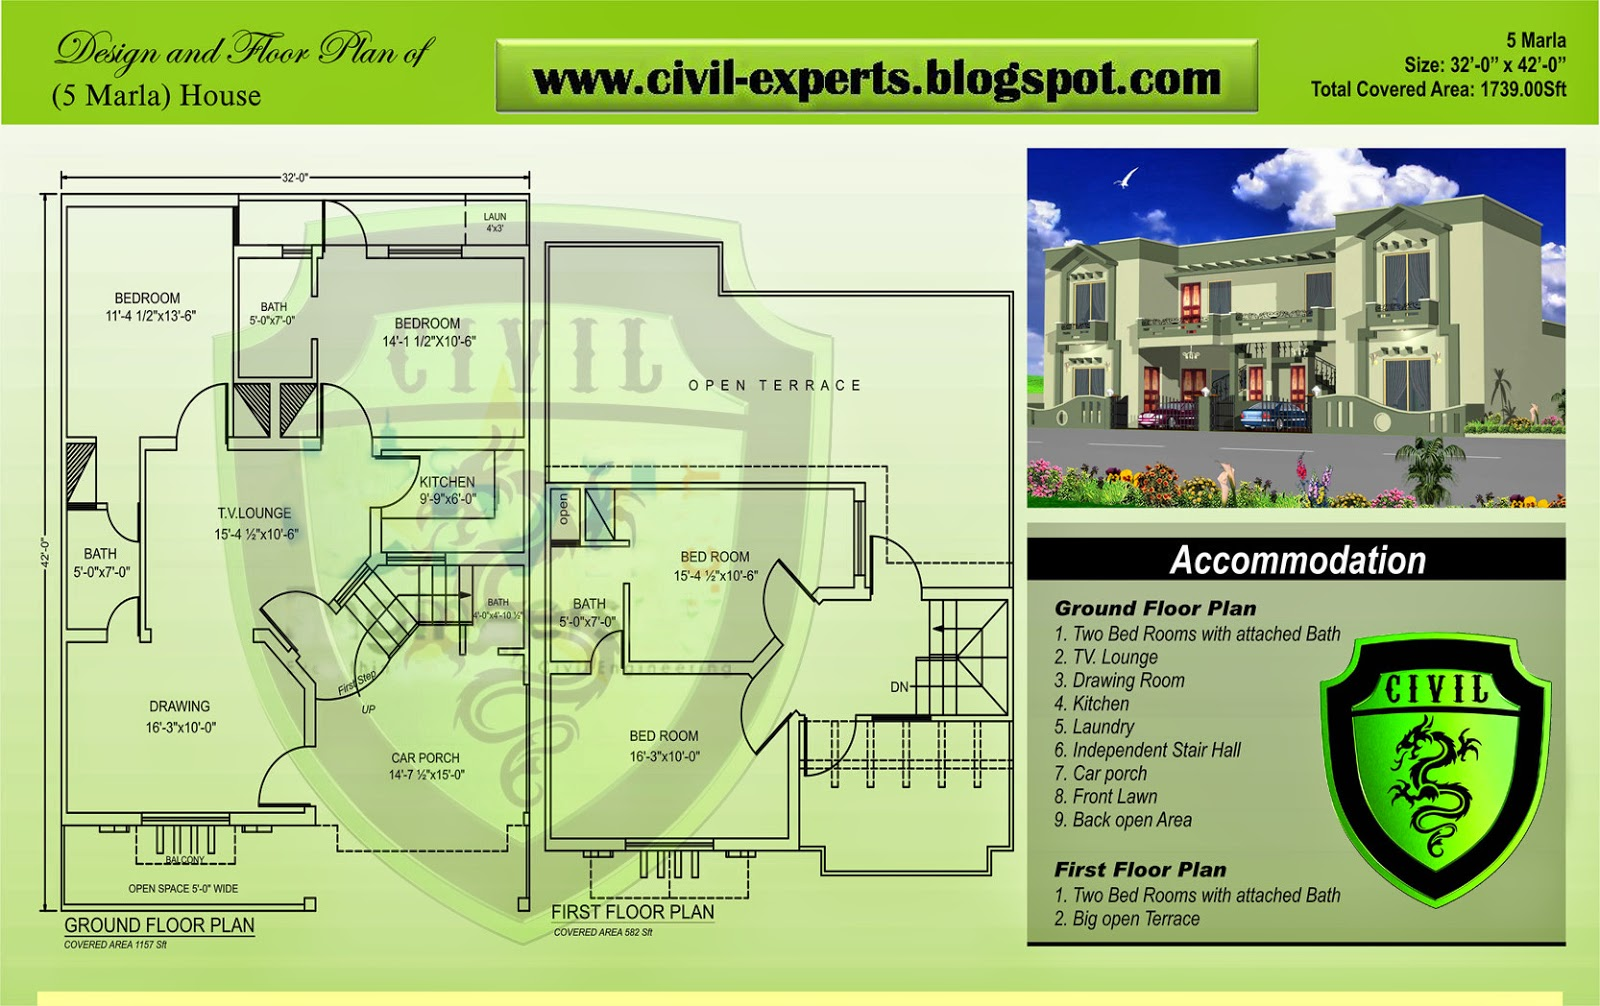 Civil Experts 5 Marla Houses Plans